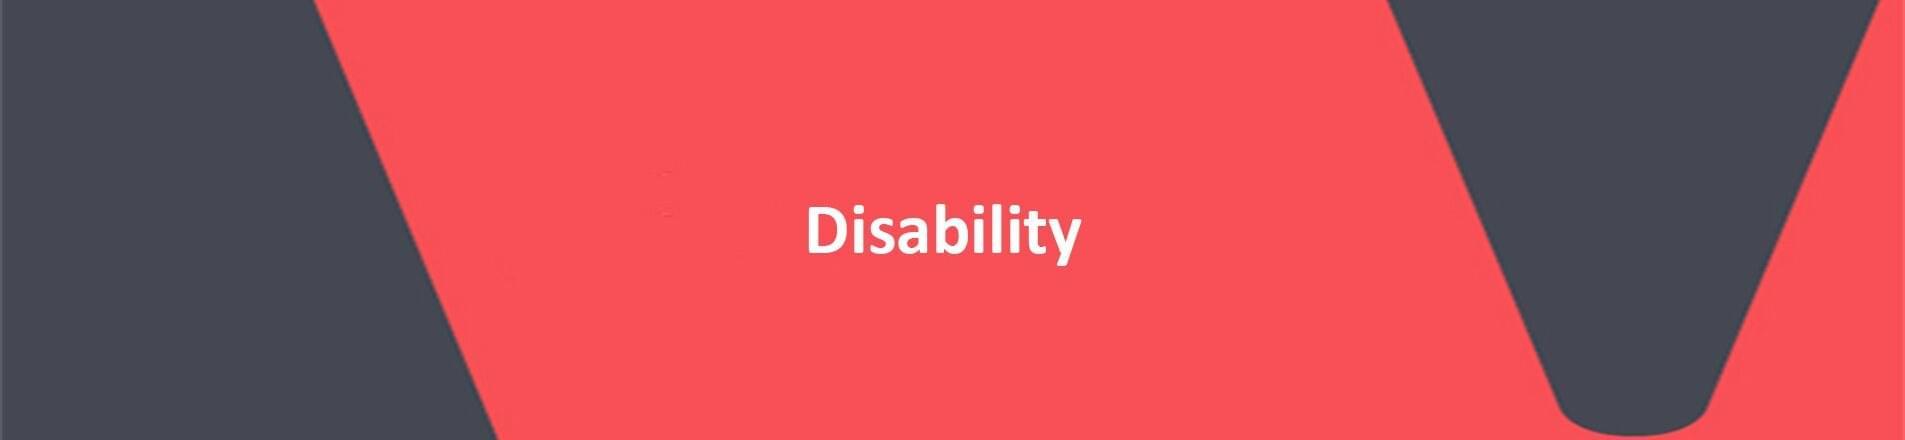 Red background with white text overlaid spelling Disability